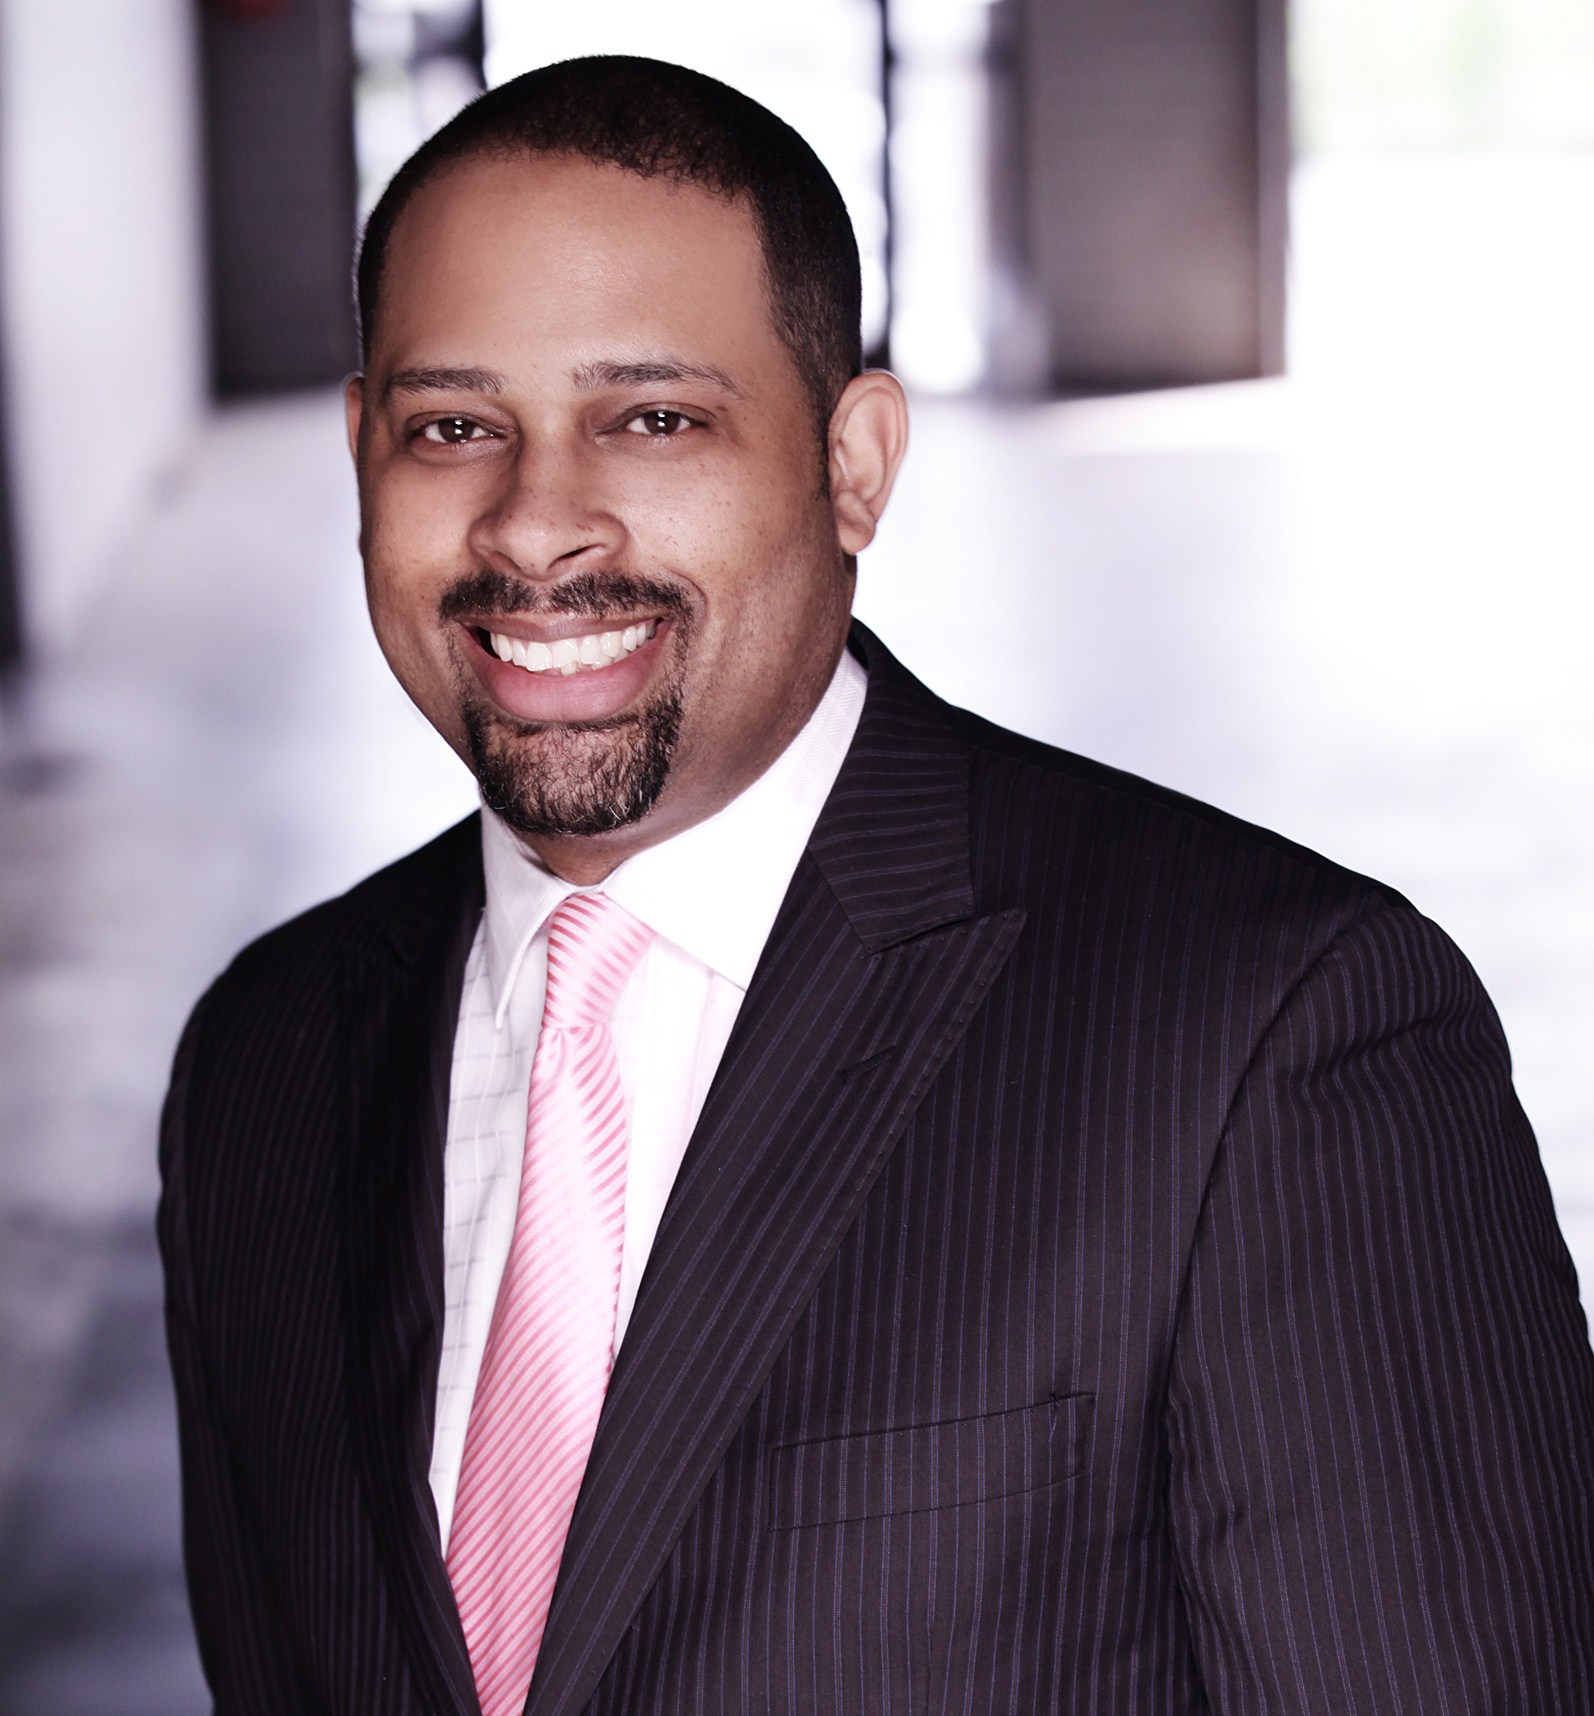 ANTHONY I. BUTLER, ESQ. Anthony I. Butler is an experienced trial attorney and diversity and inclusion consultant.